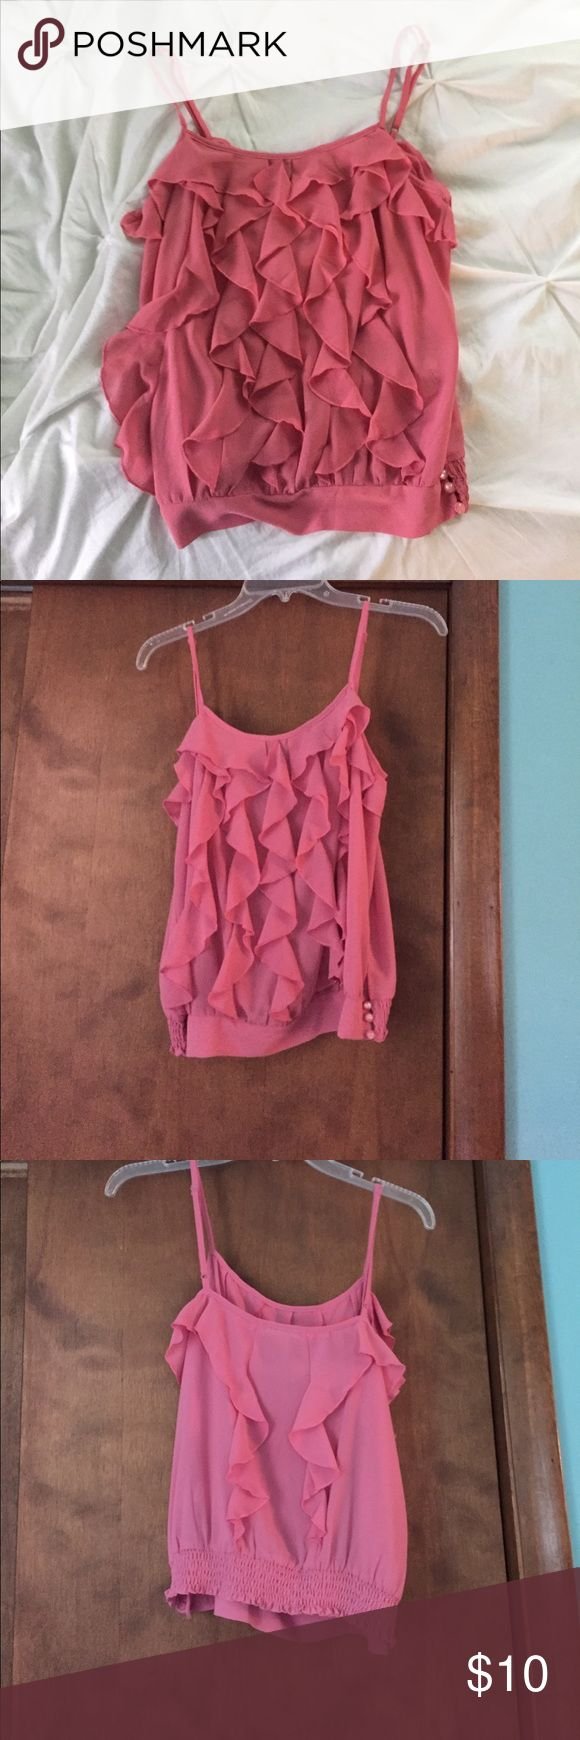 Pink tank top blouse Pink tank top, blouse material, from Charlotte rouse size medium Charlotte Russe Tops Tank Tops